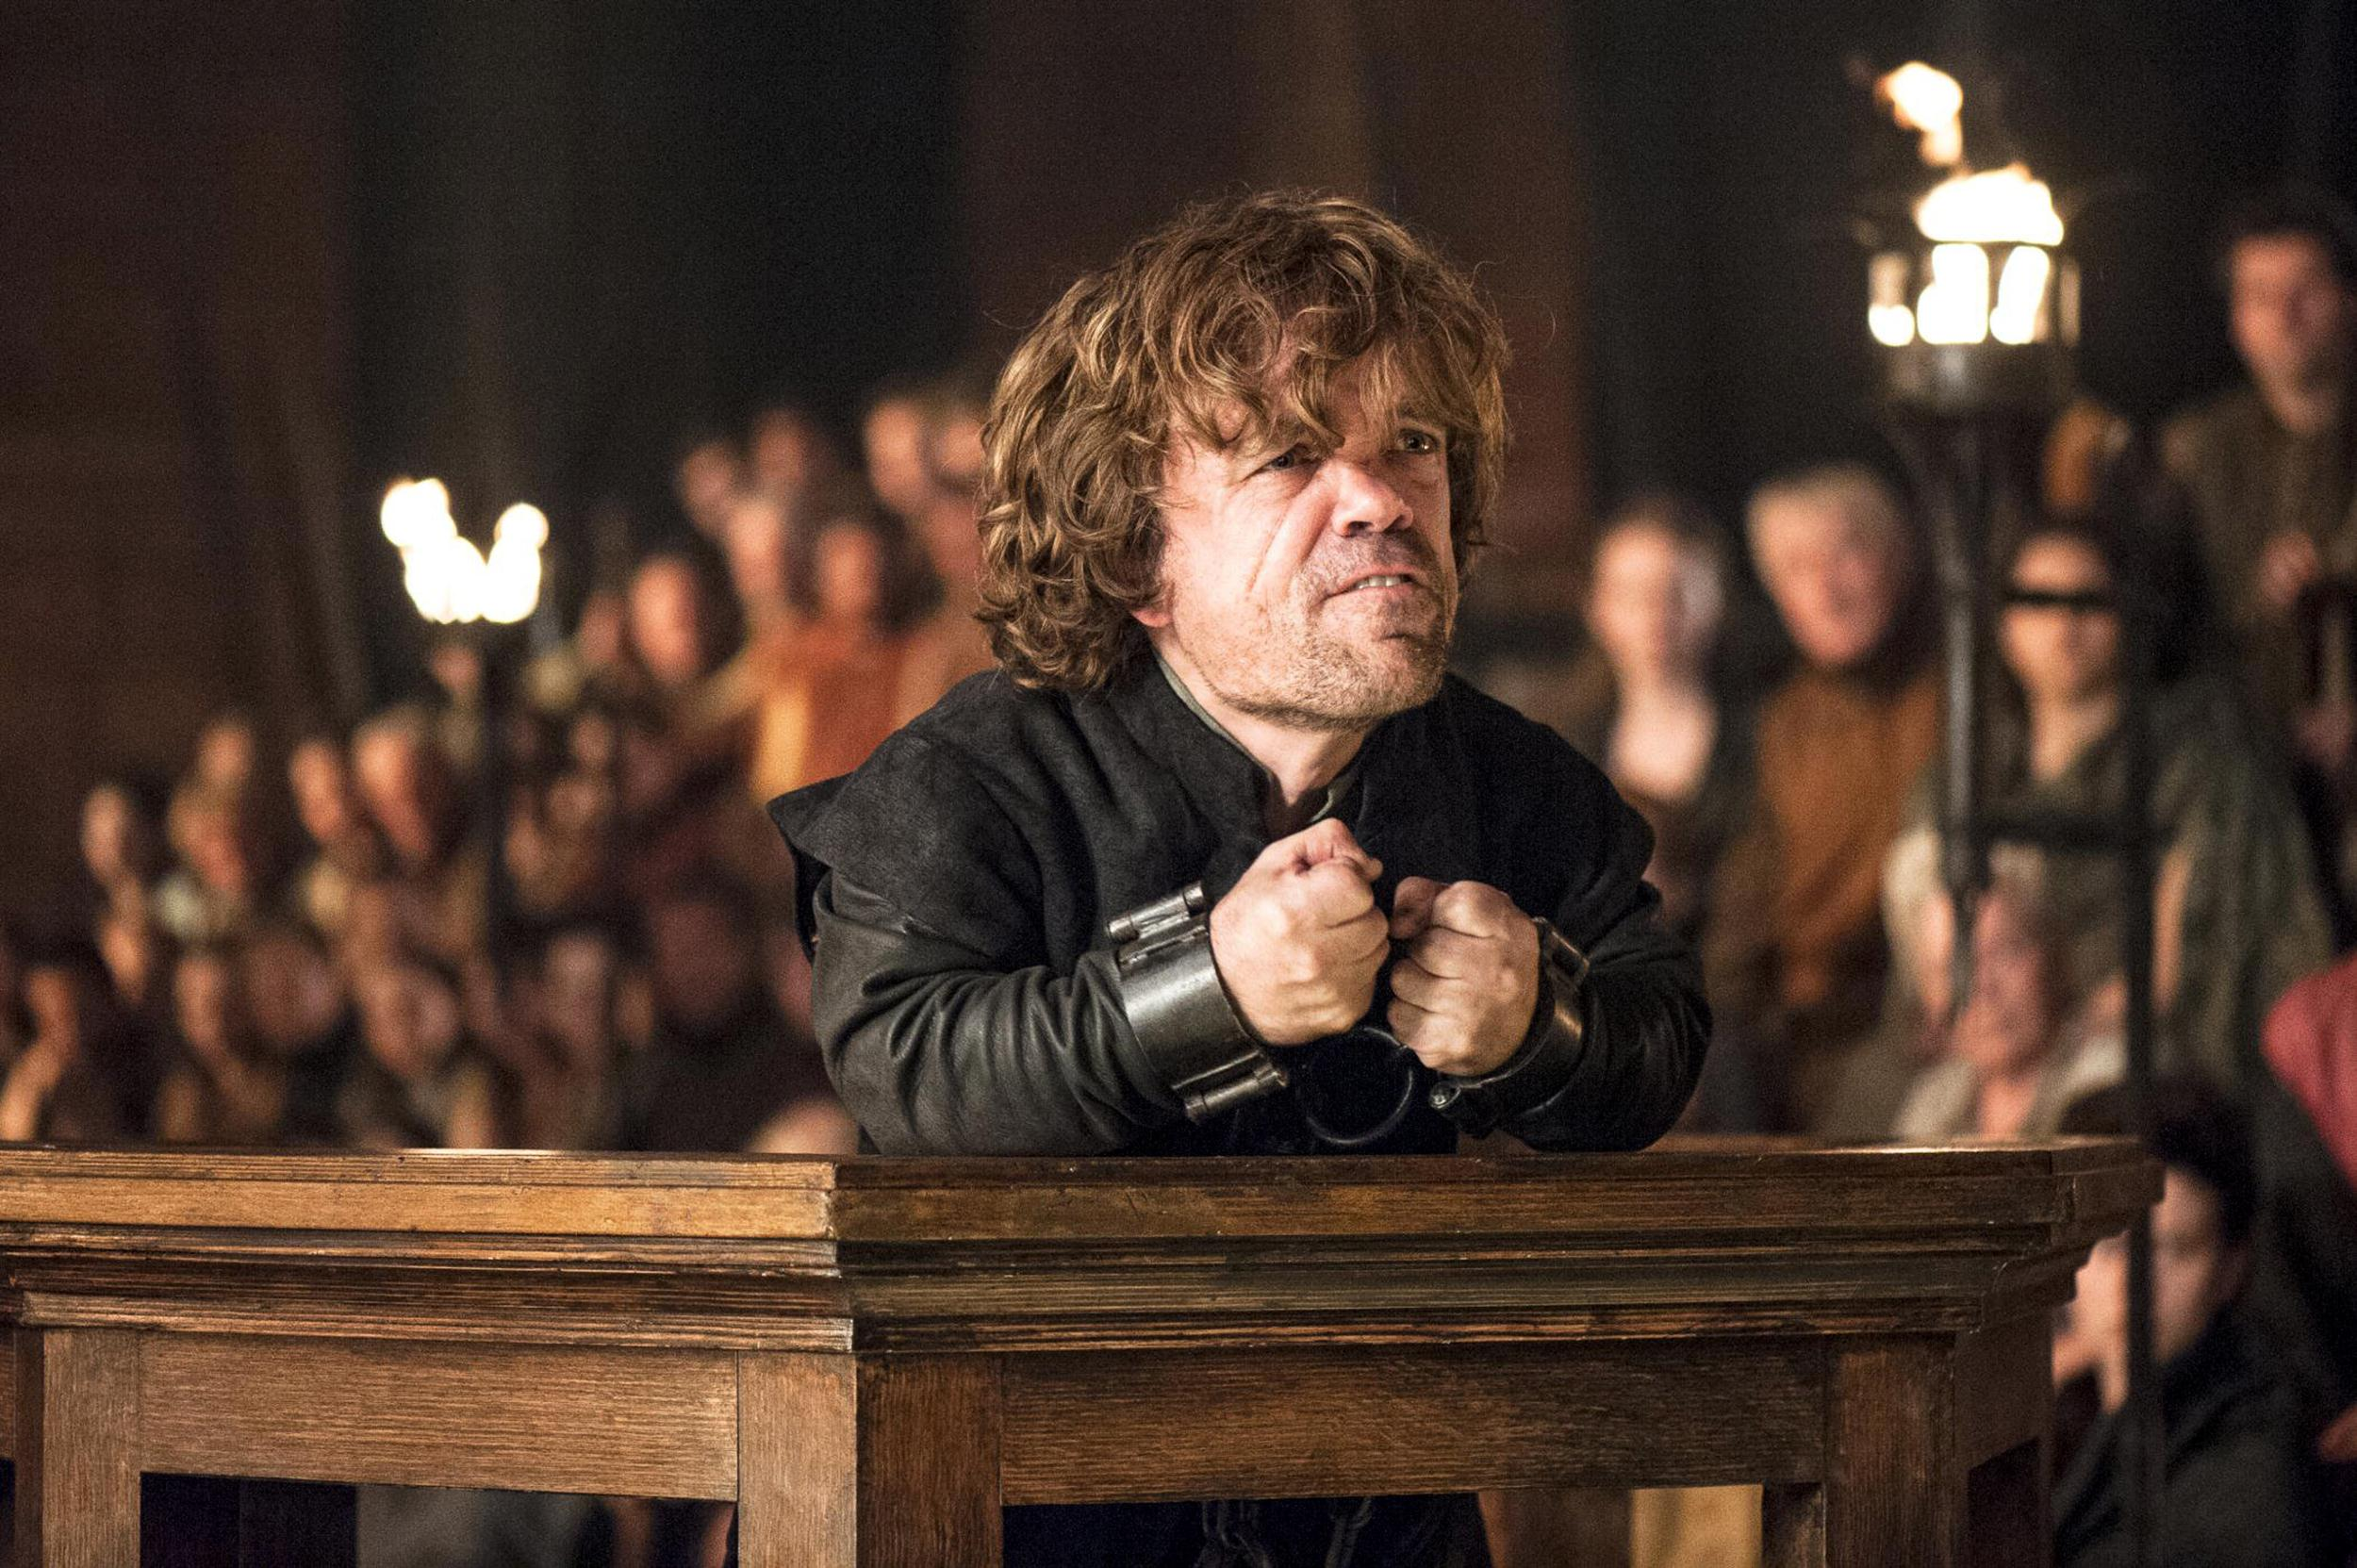 Some-HBO-GO-users-struggle-as-'Game-of-Thrones'-premieres